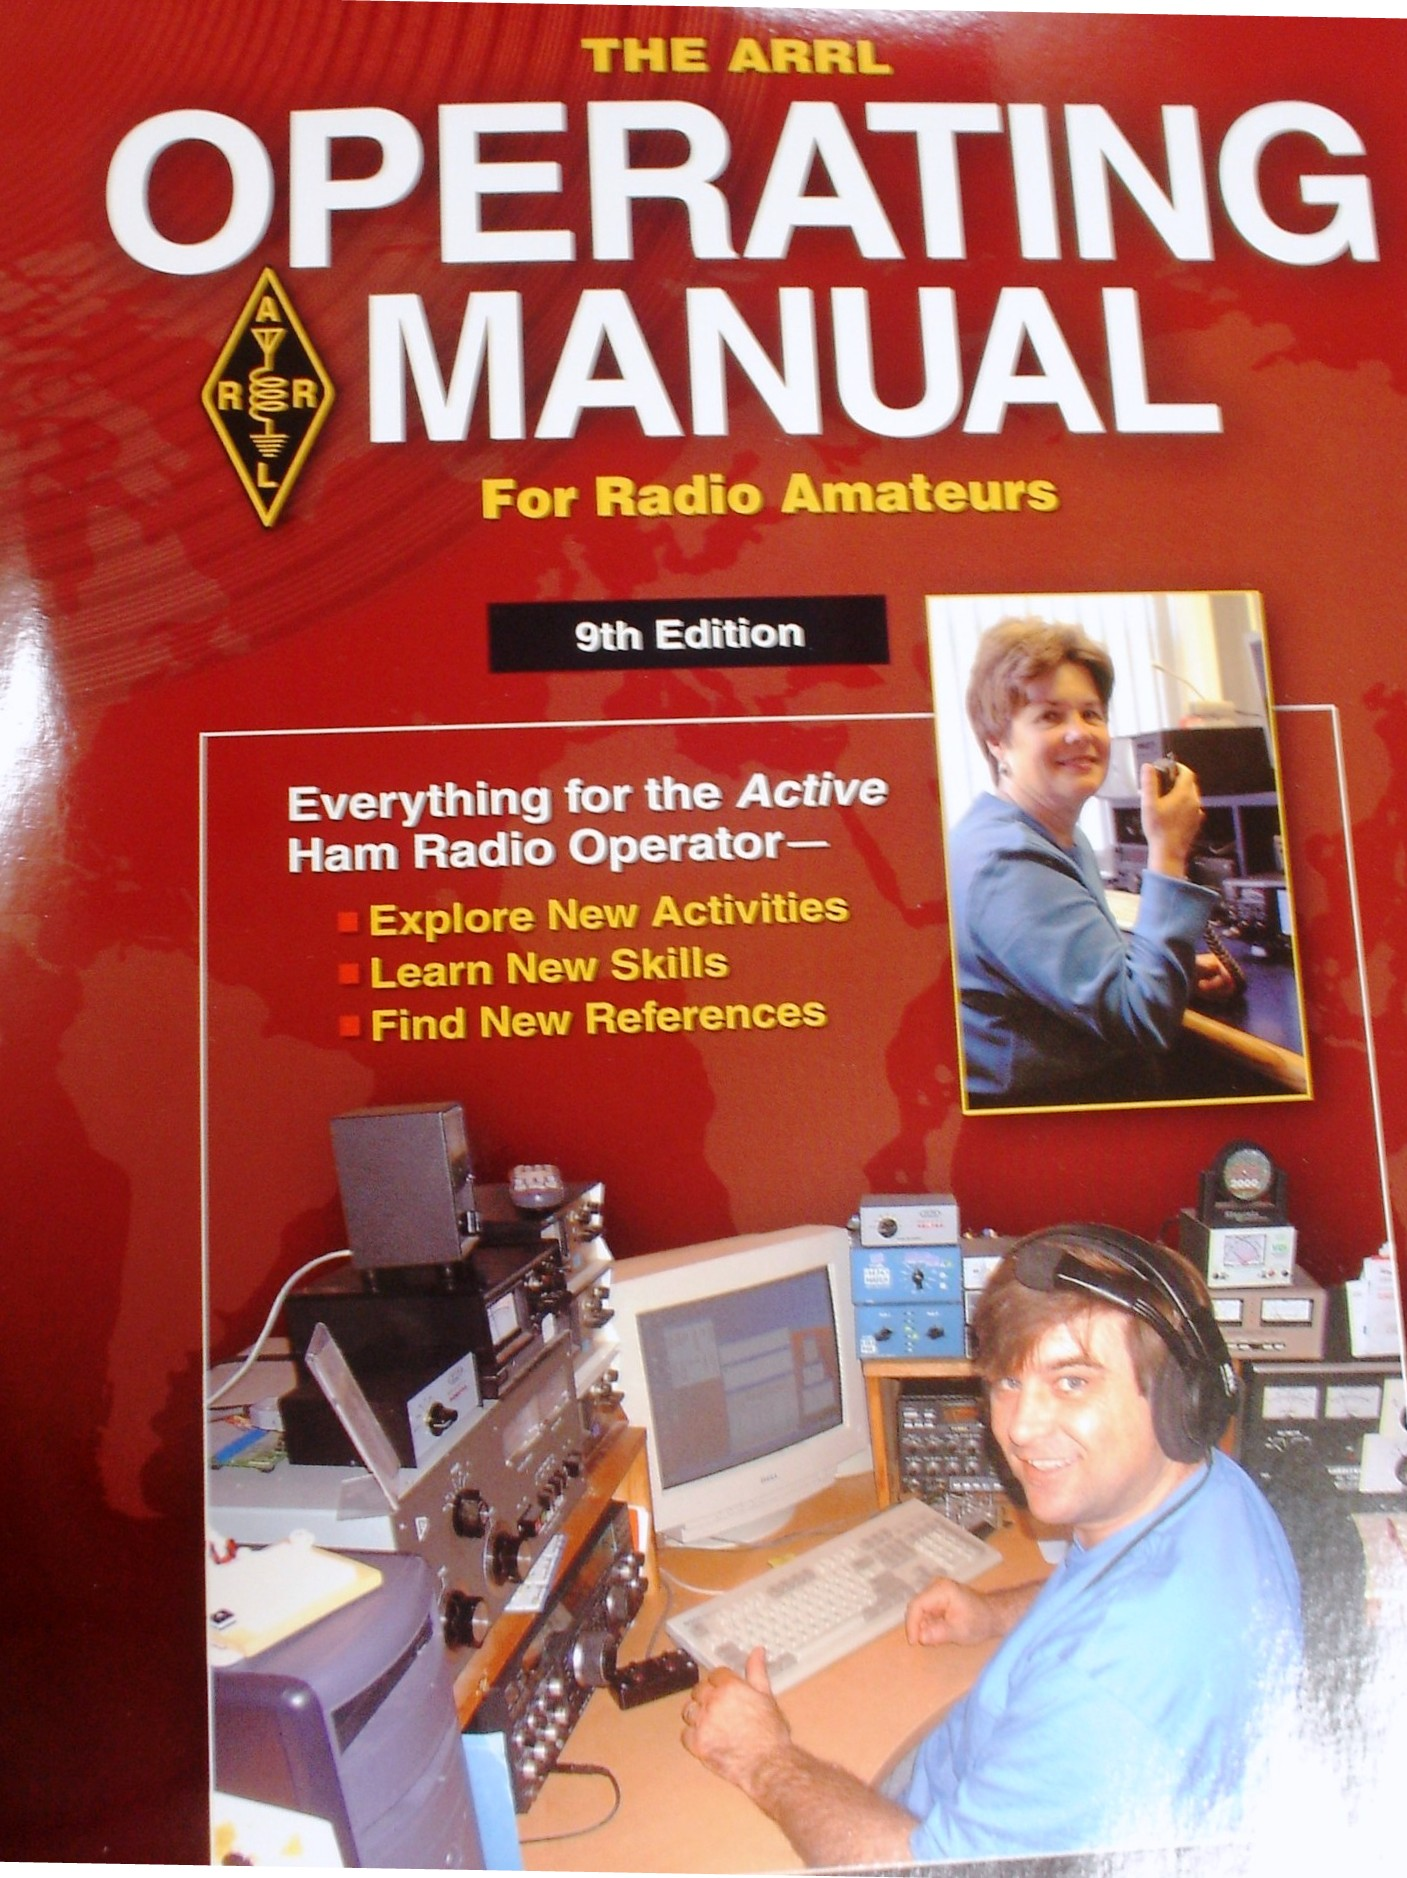 HAM RADIO OPERATERS MANUAL